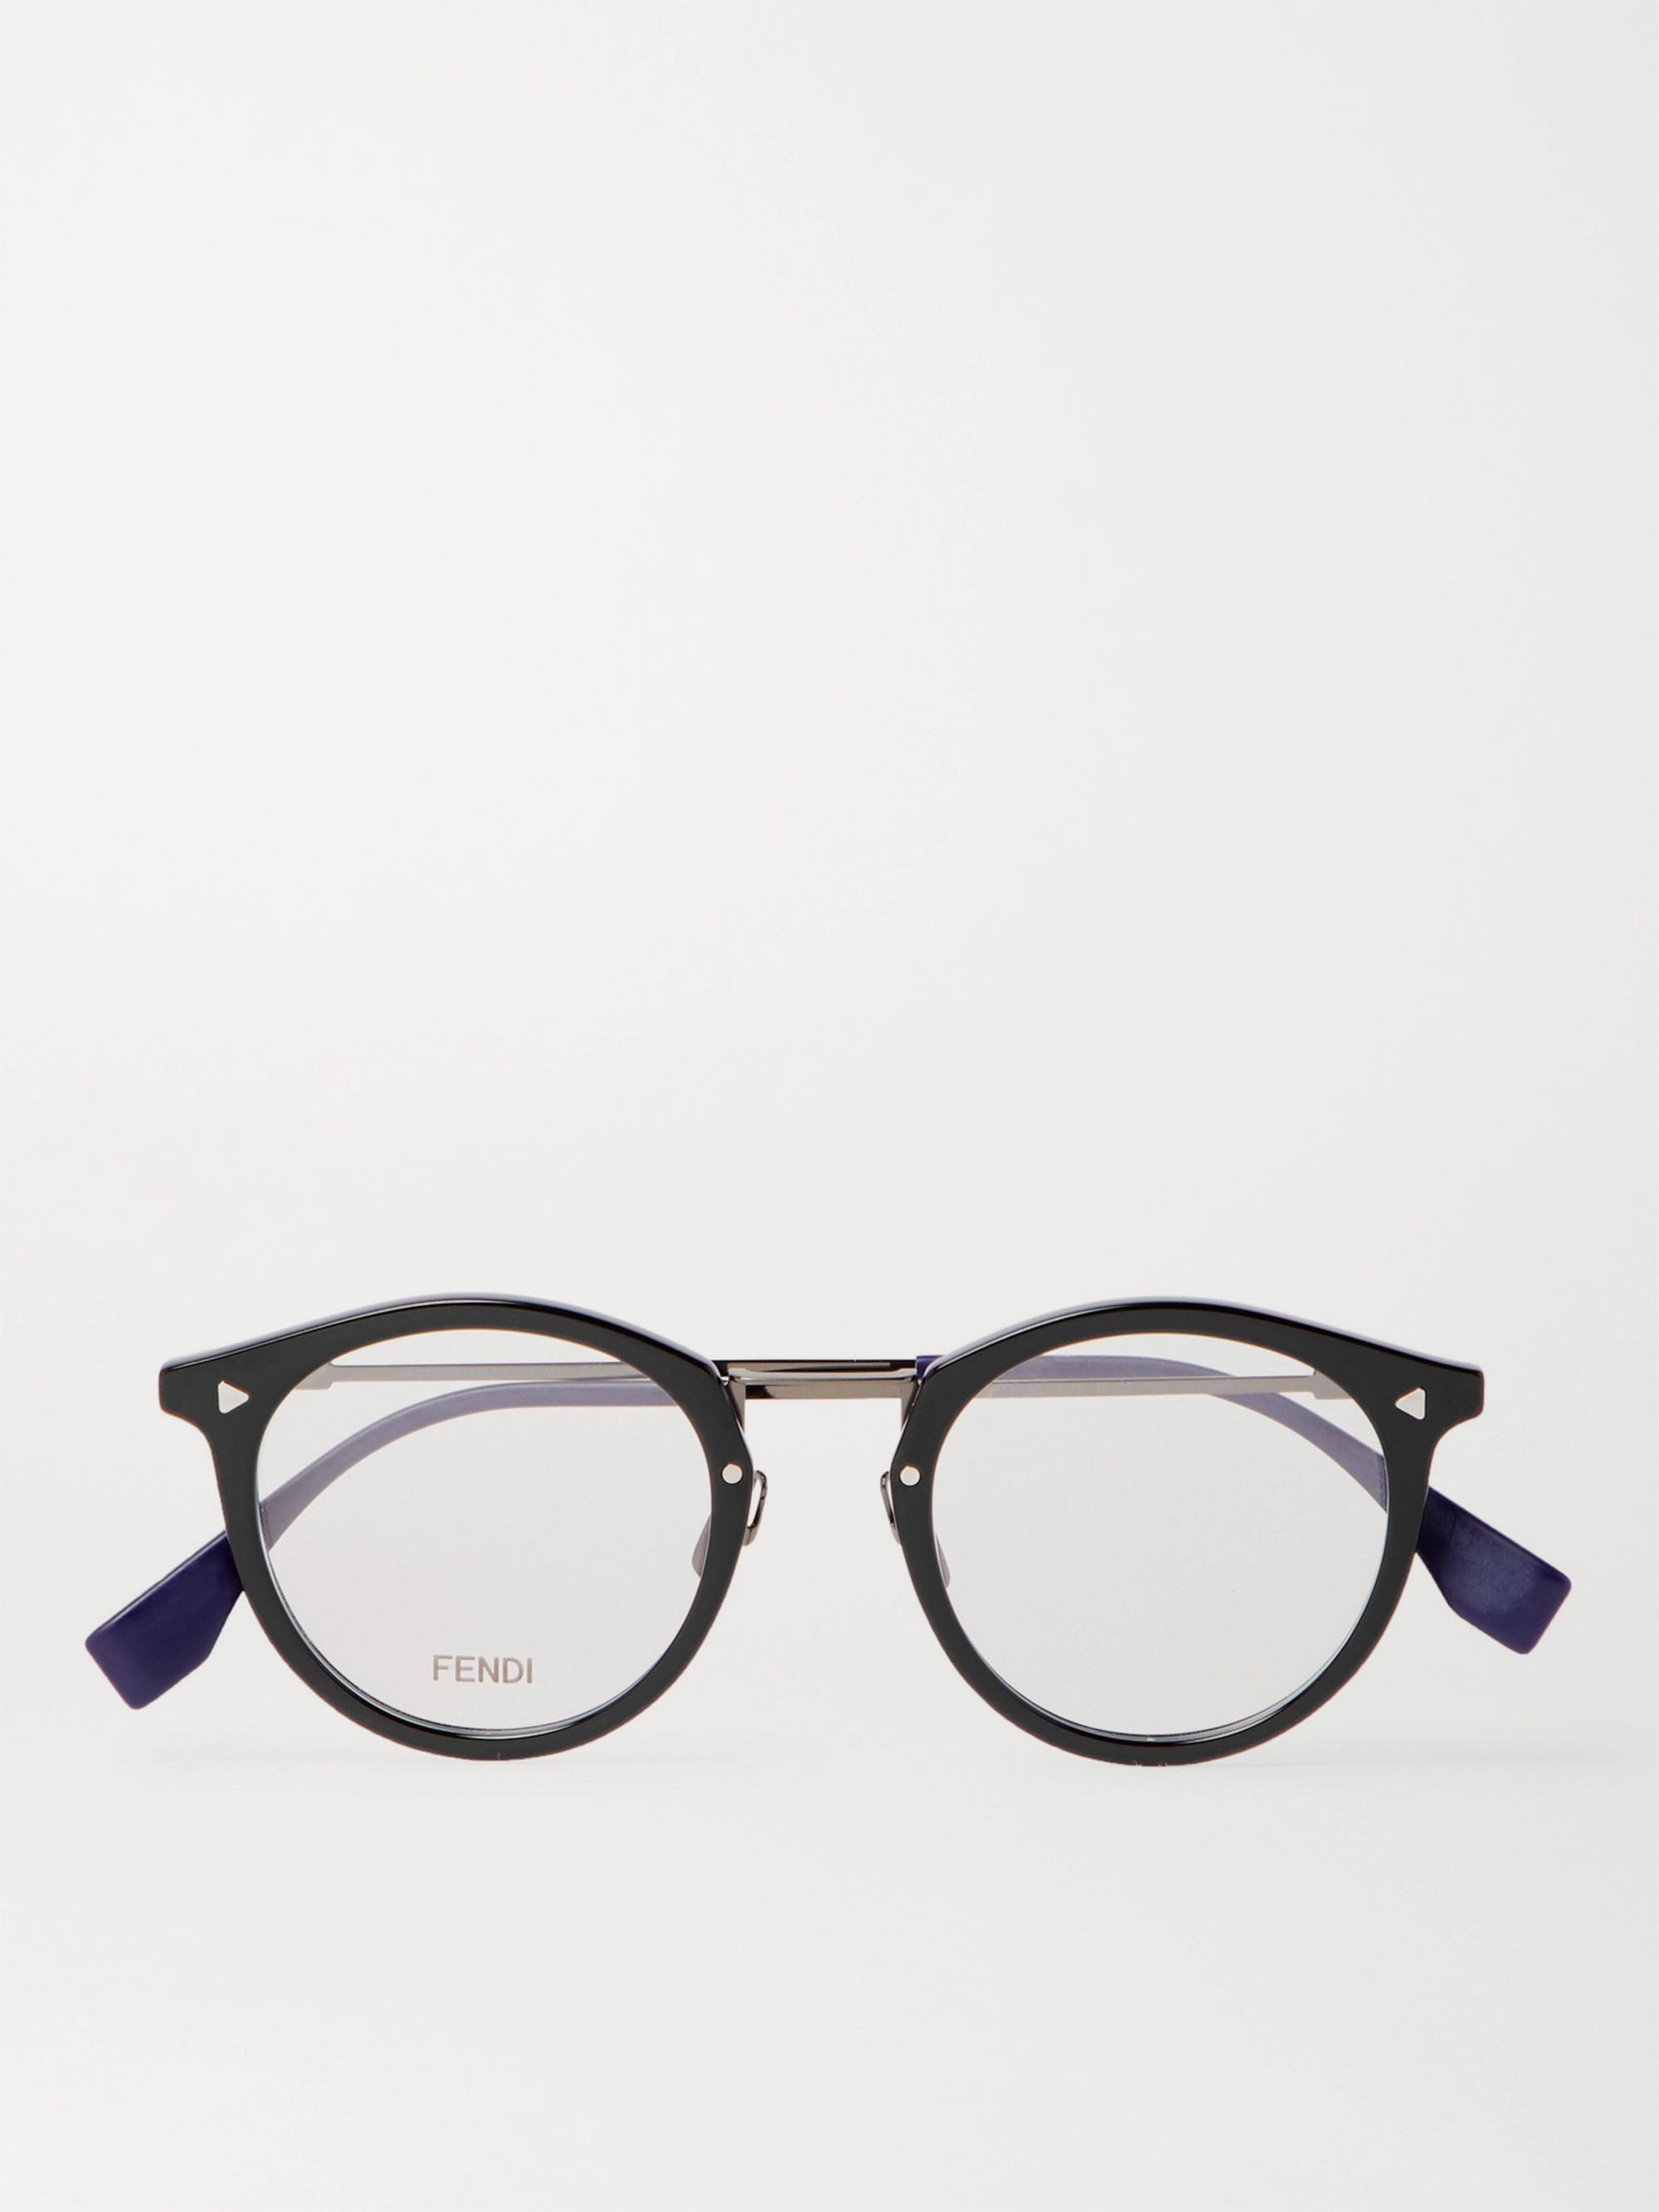 Fendi Round-Frame Acetate and Silver-Tone Optical Glasses